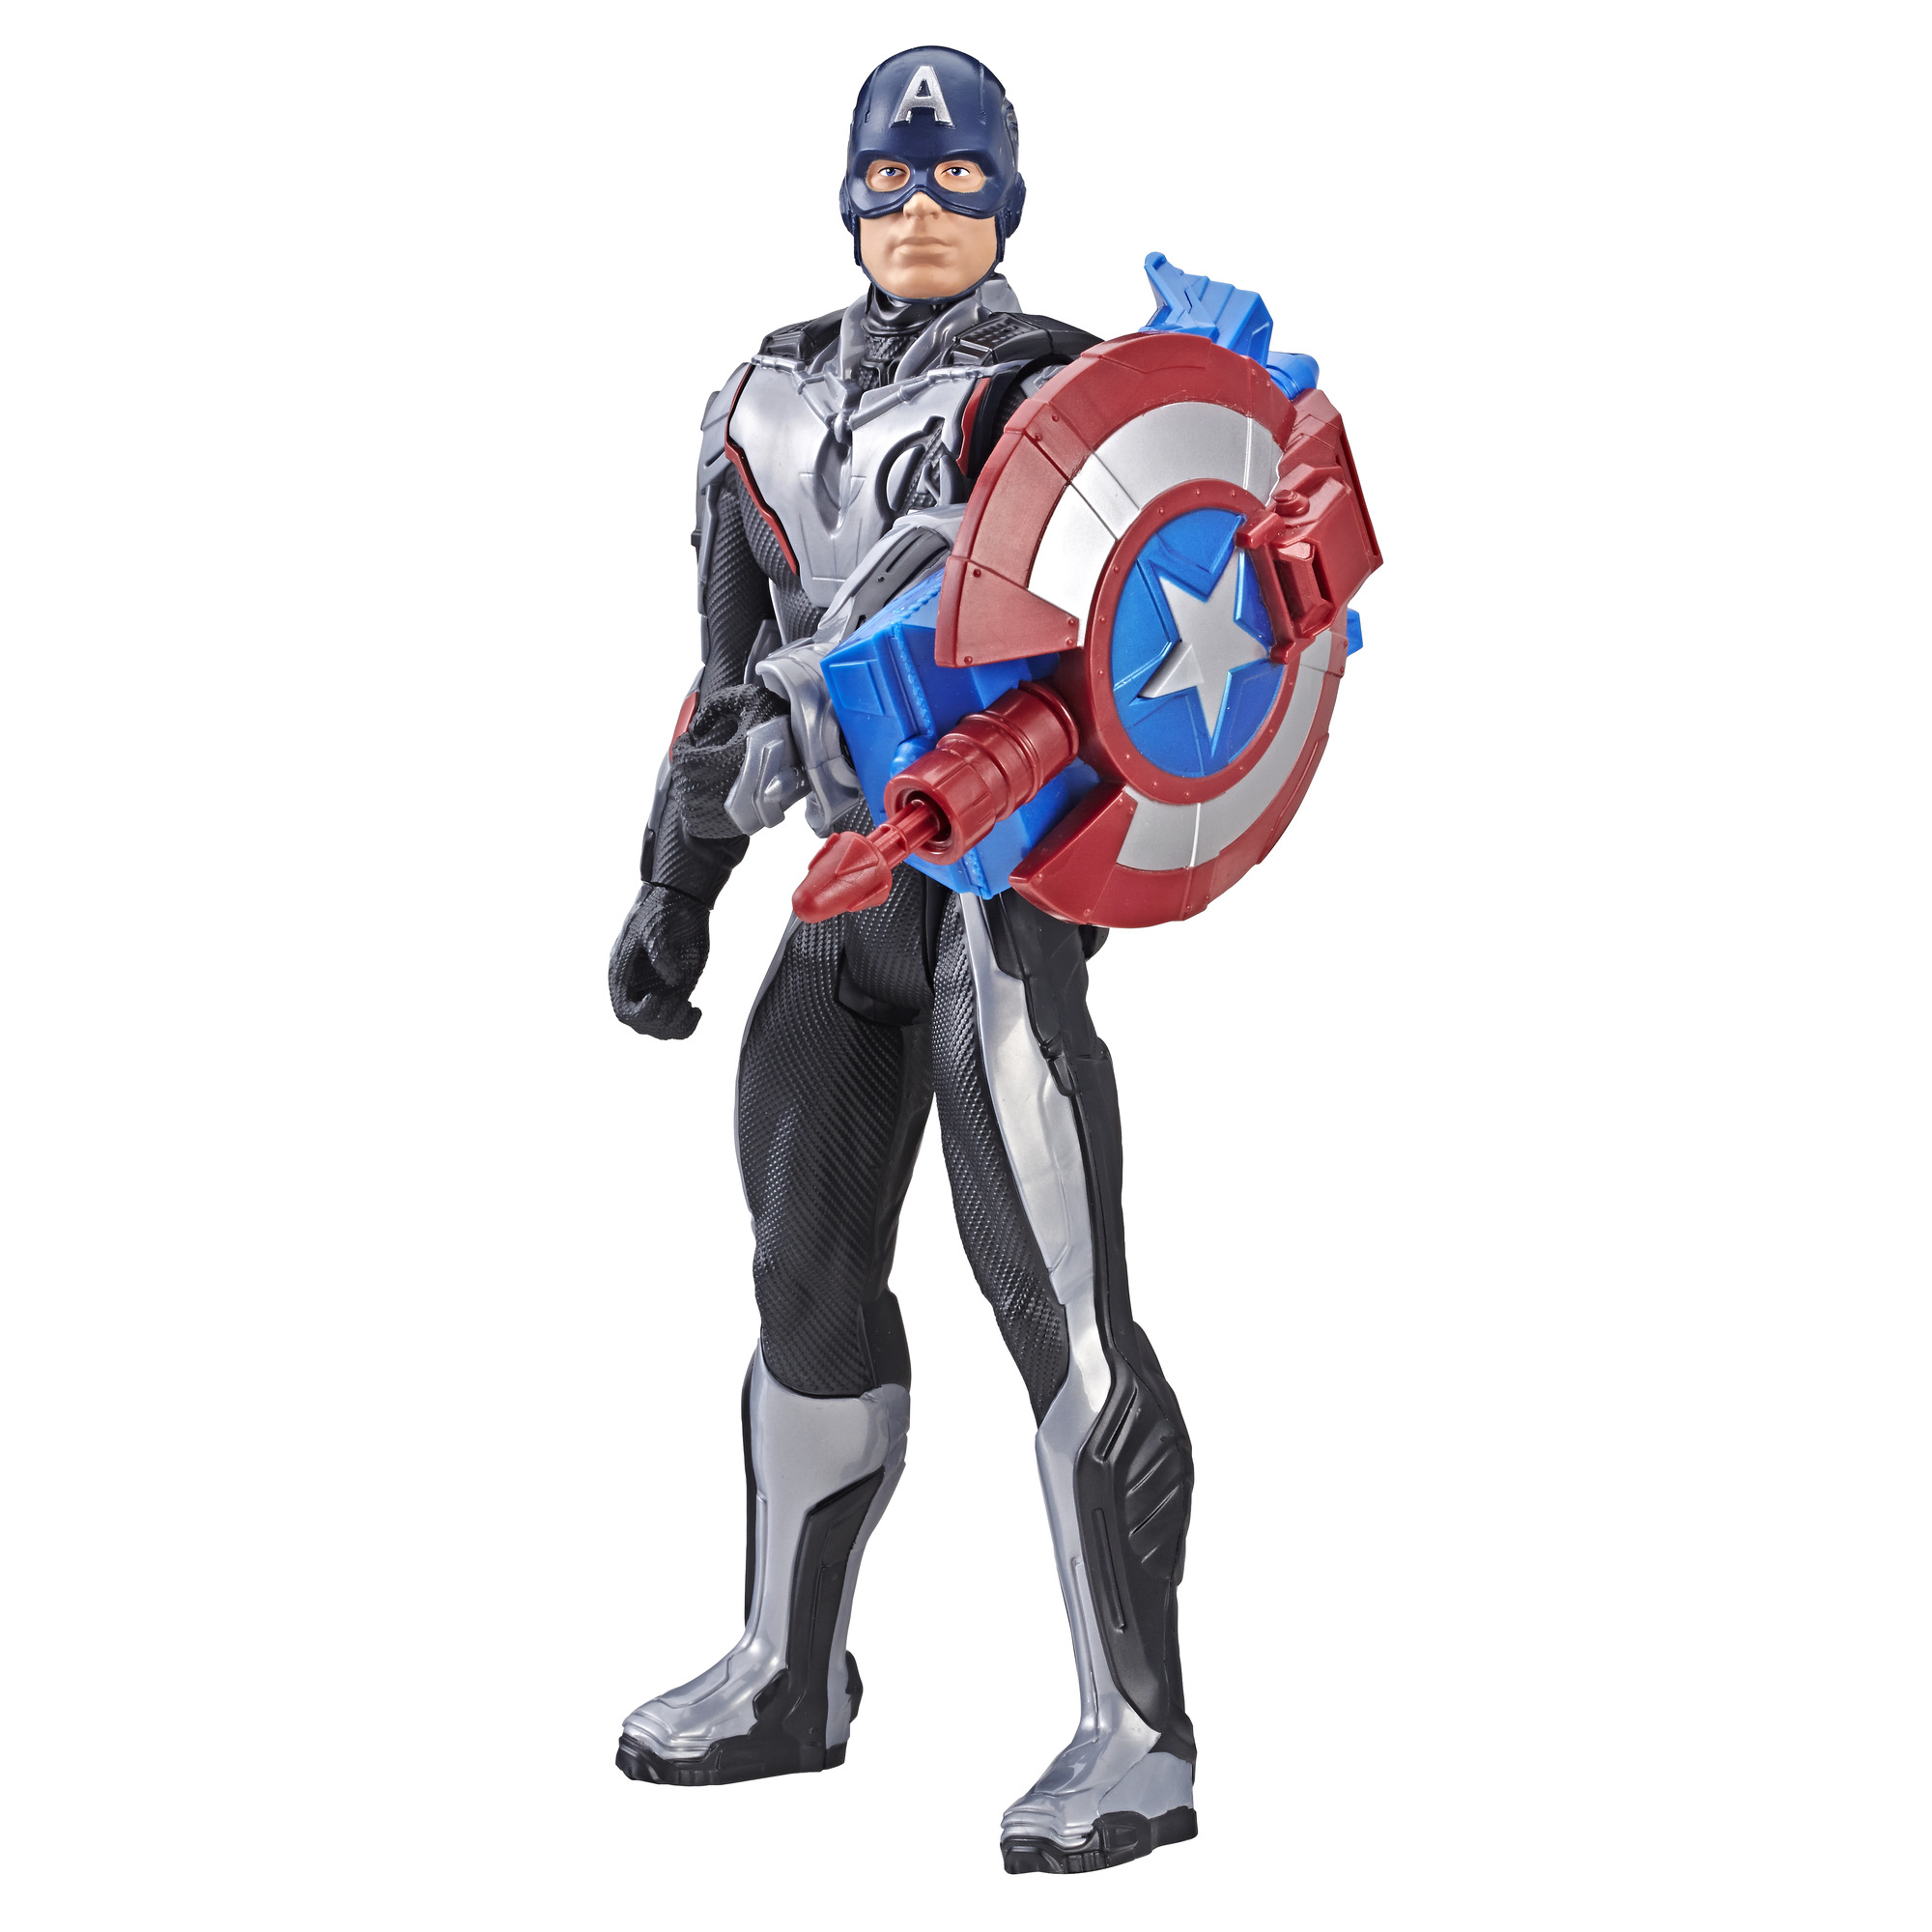 Marvel Avengers: Endgame Titan Hero Power FX Captain America Figure